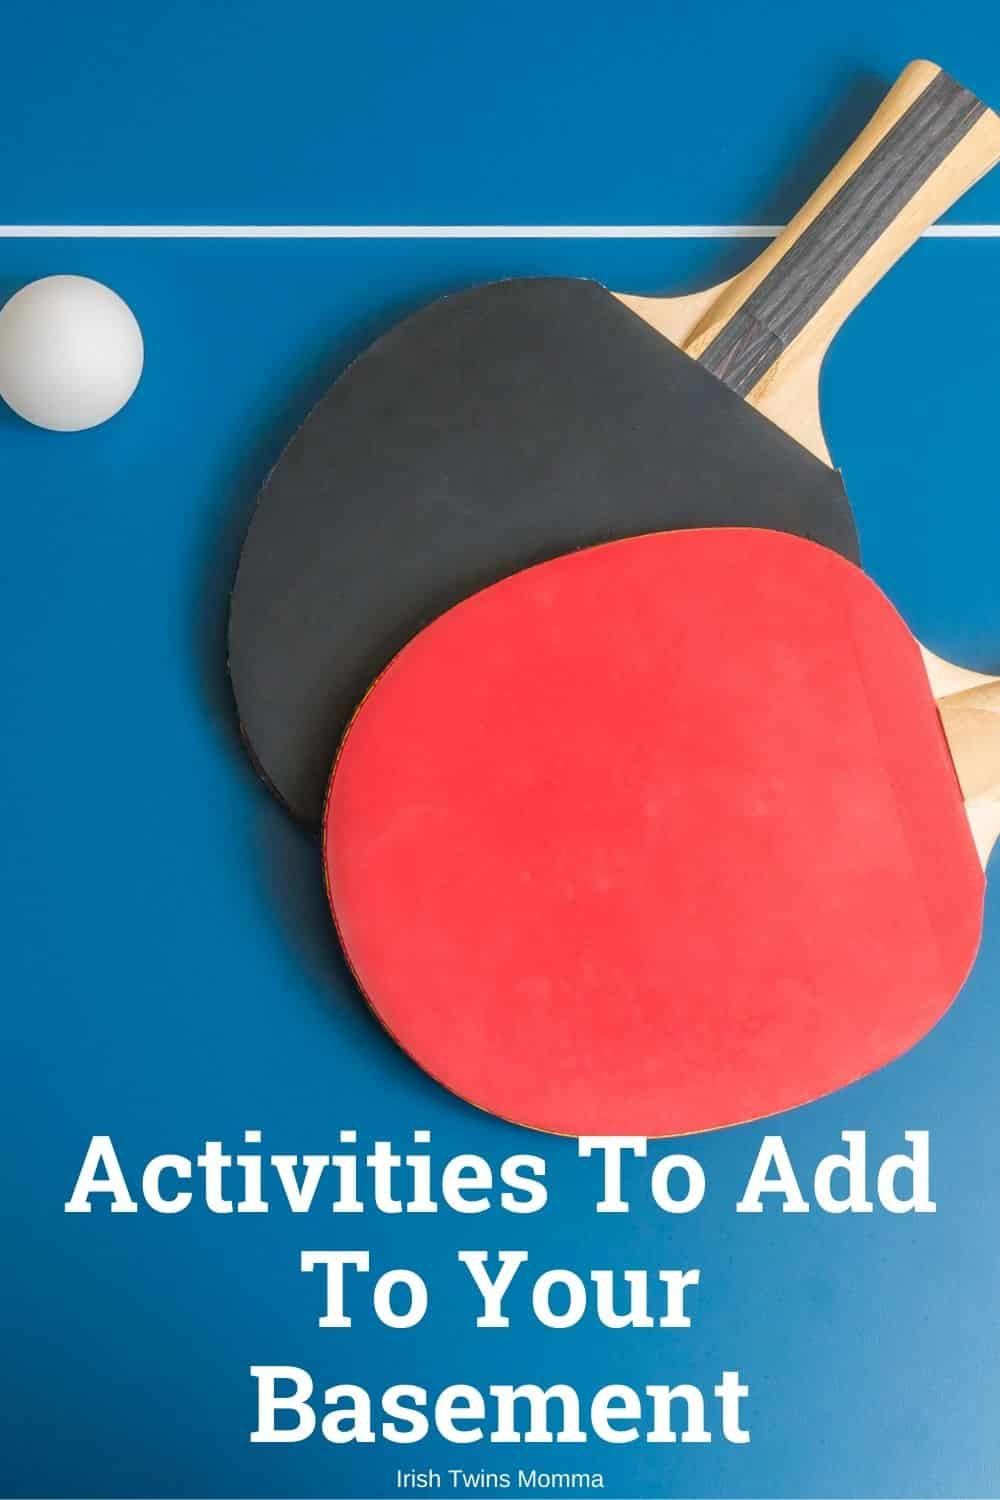 Activities To Add To Your Basement (1)